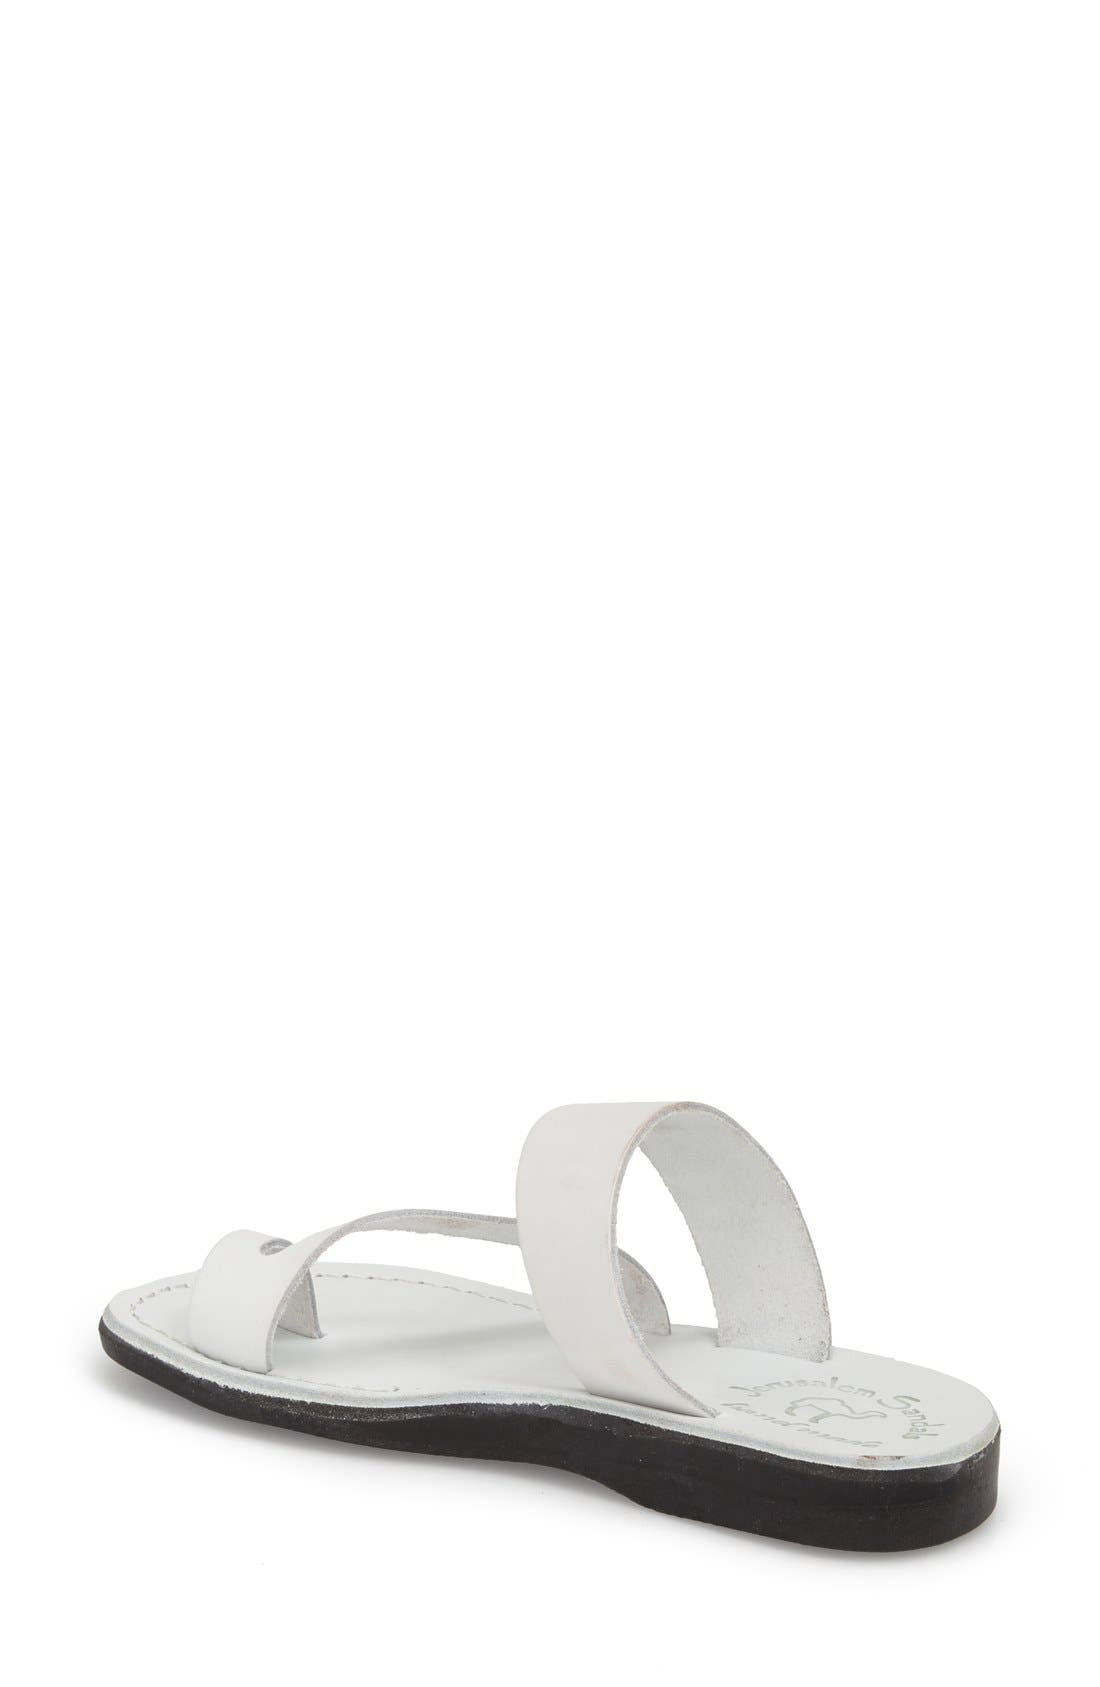 'Zohar' Leather Sandal,                             Alternate thumbnail 27, color,